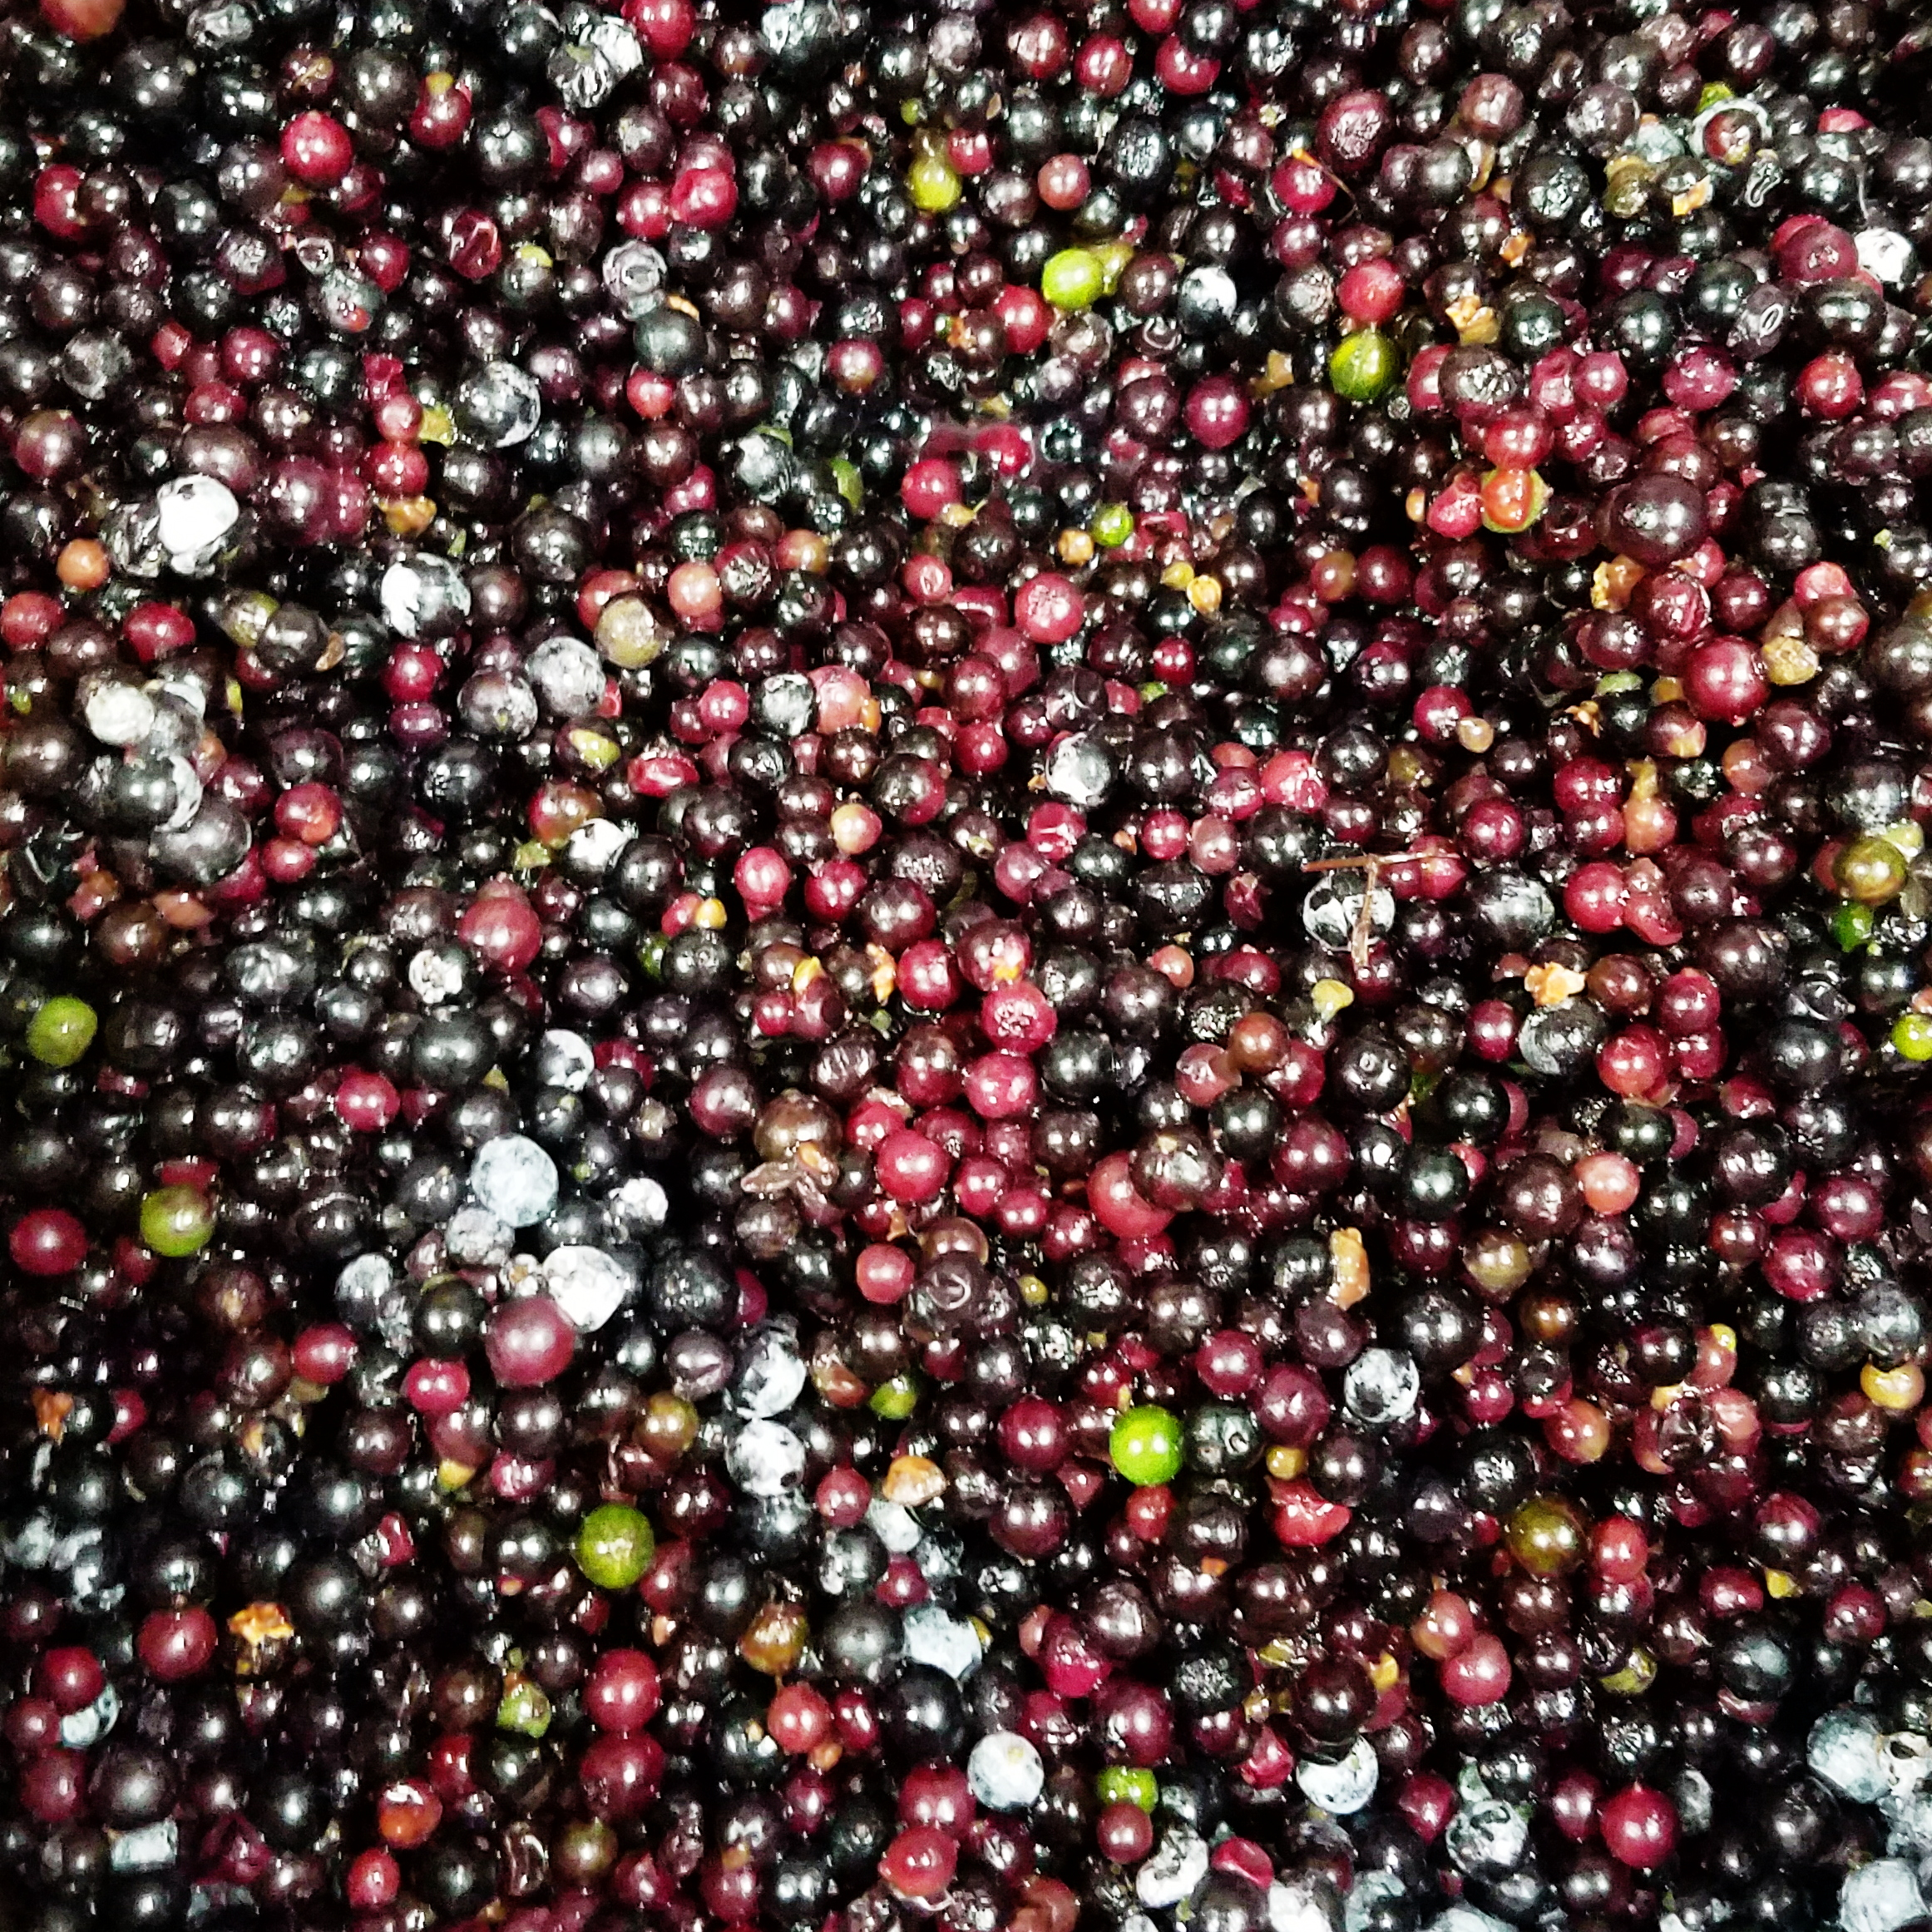 Juicing the stemmed elderberries - if only scent could be captured in a photo!